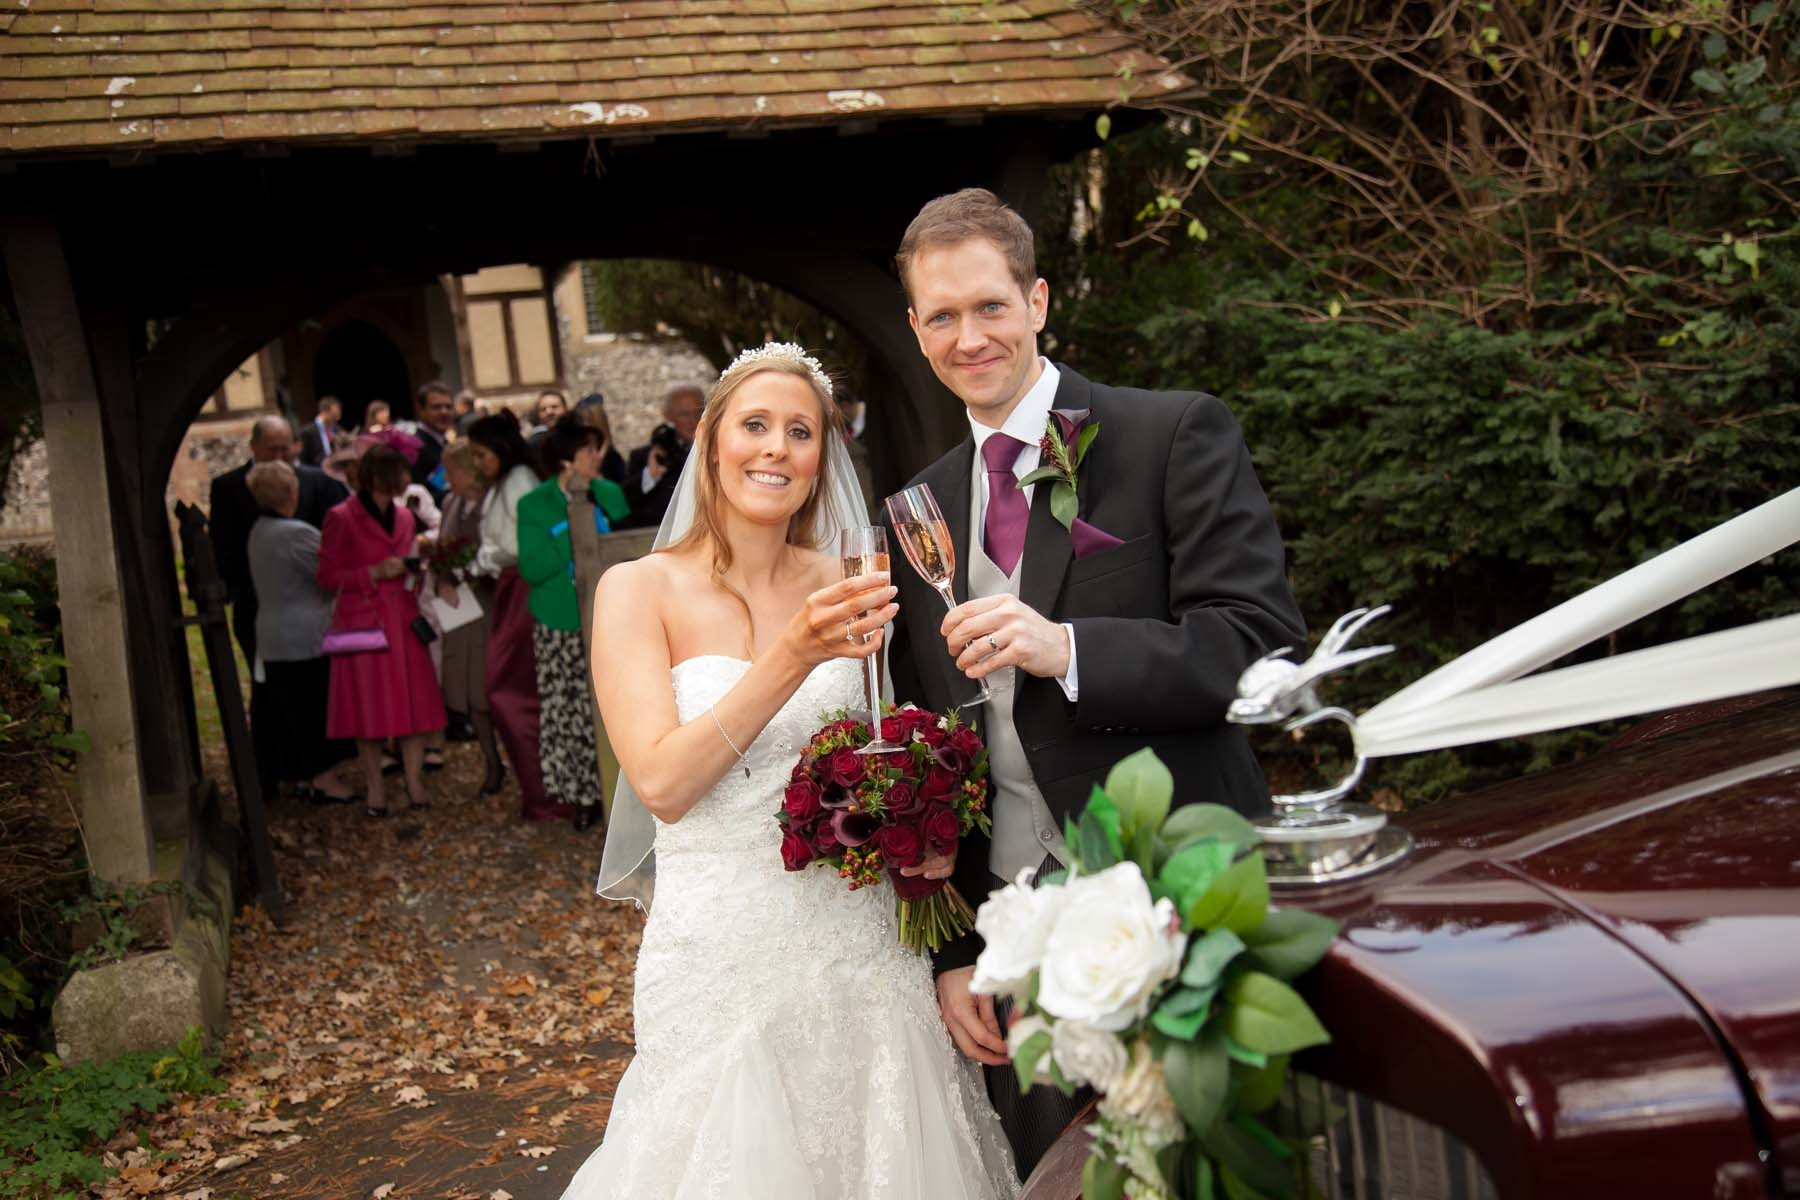 Sussex & Surrey Wedding Photographer - Ceremony (13)